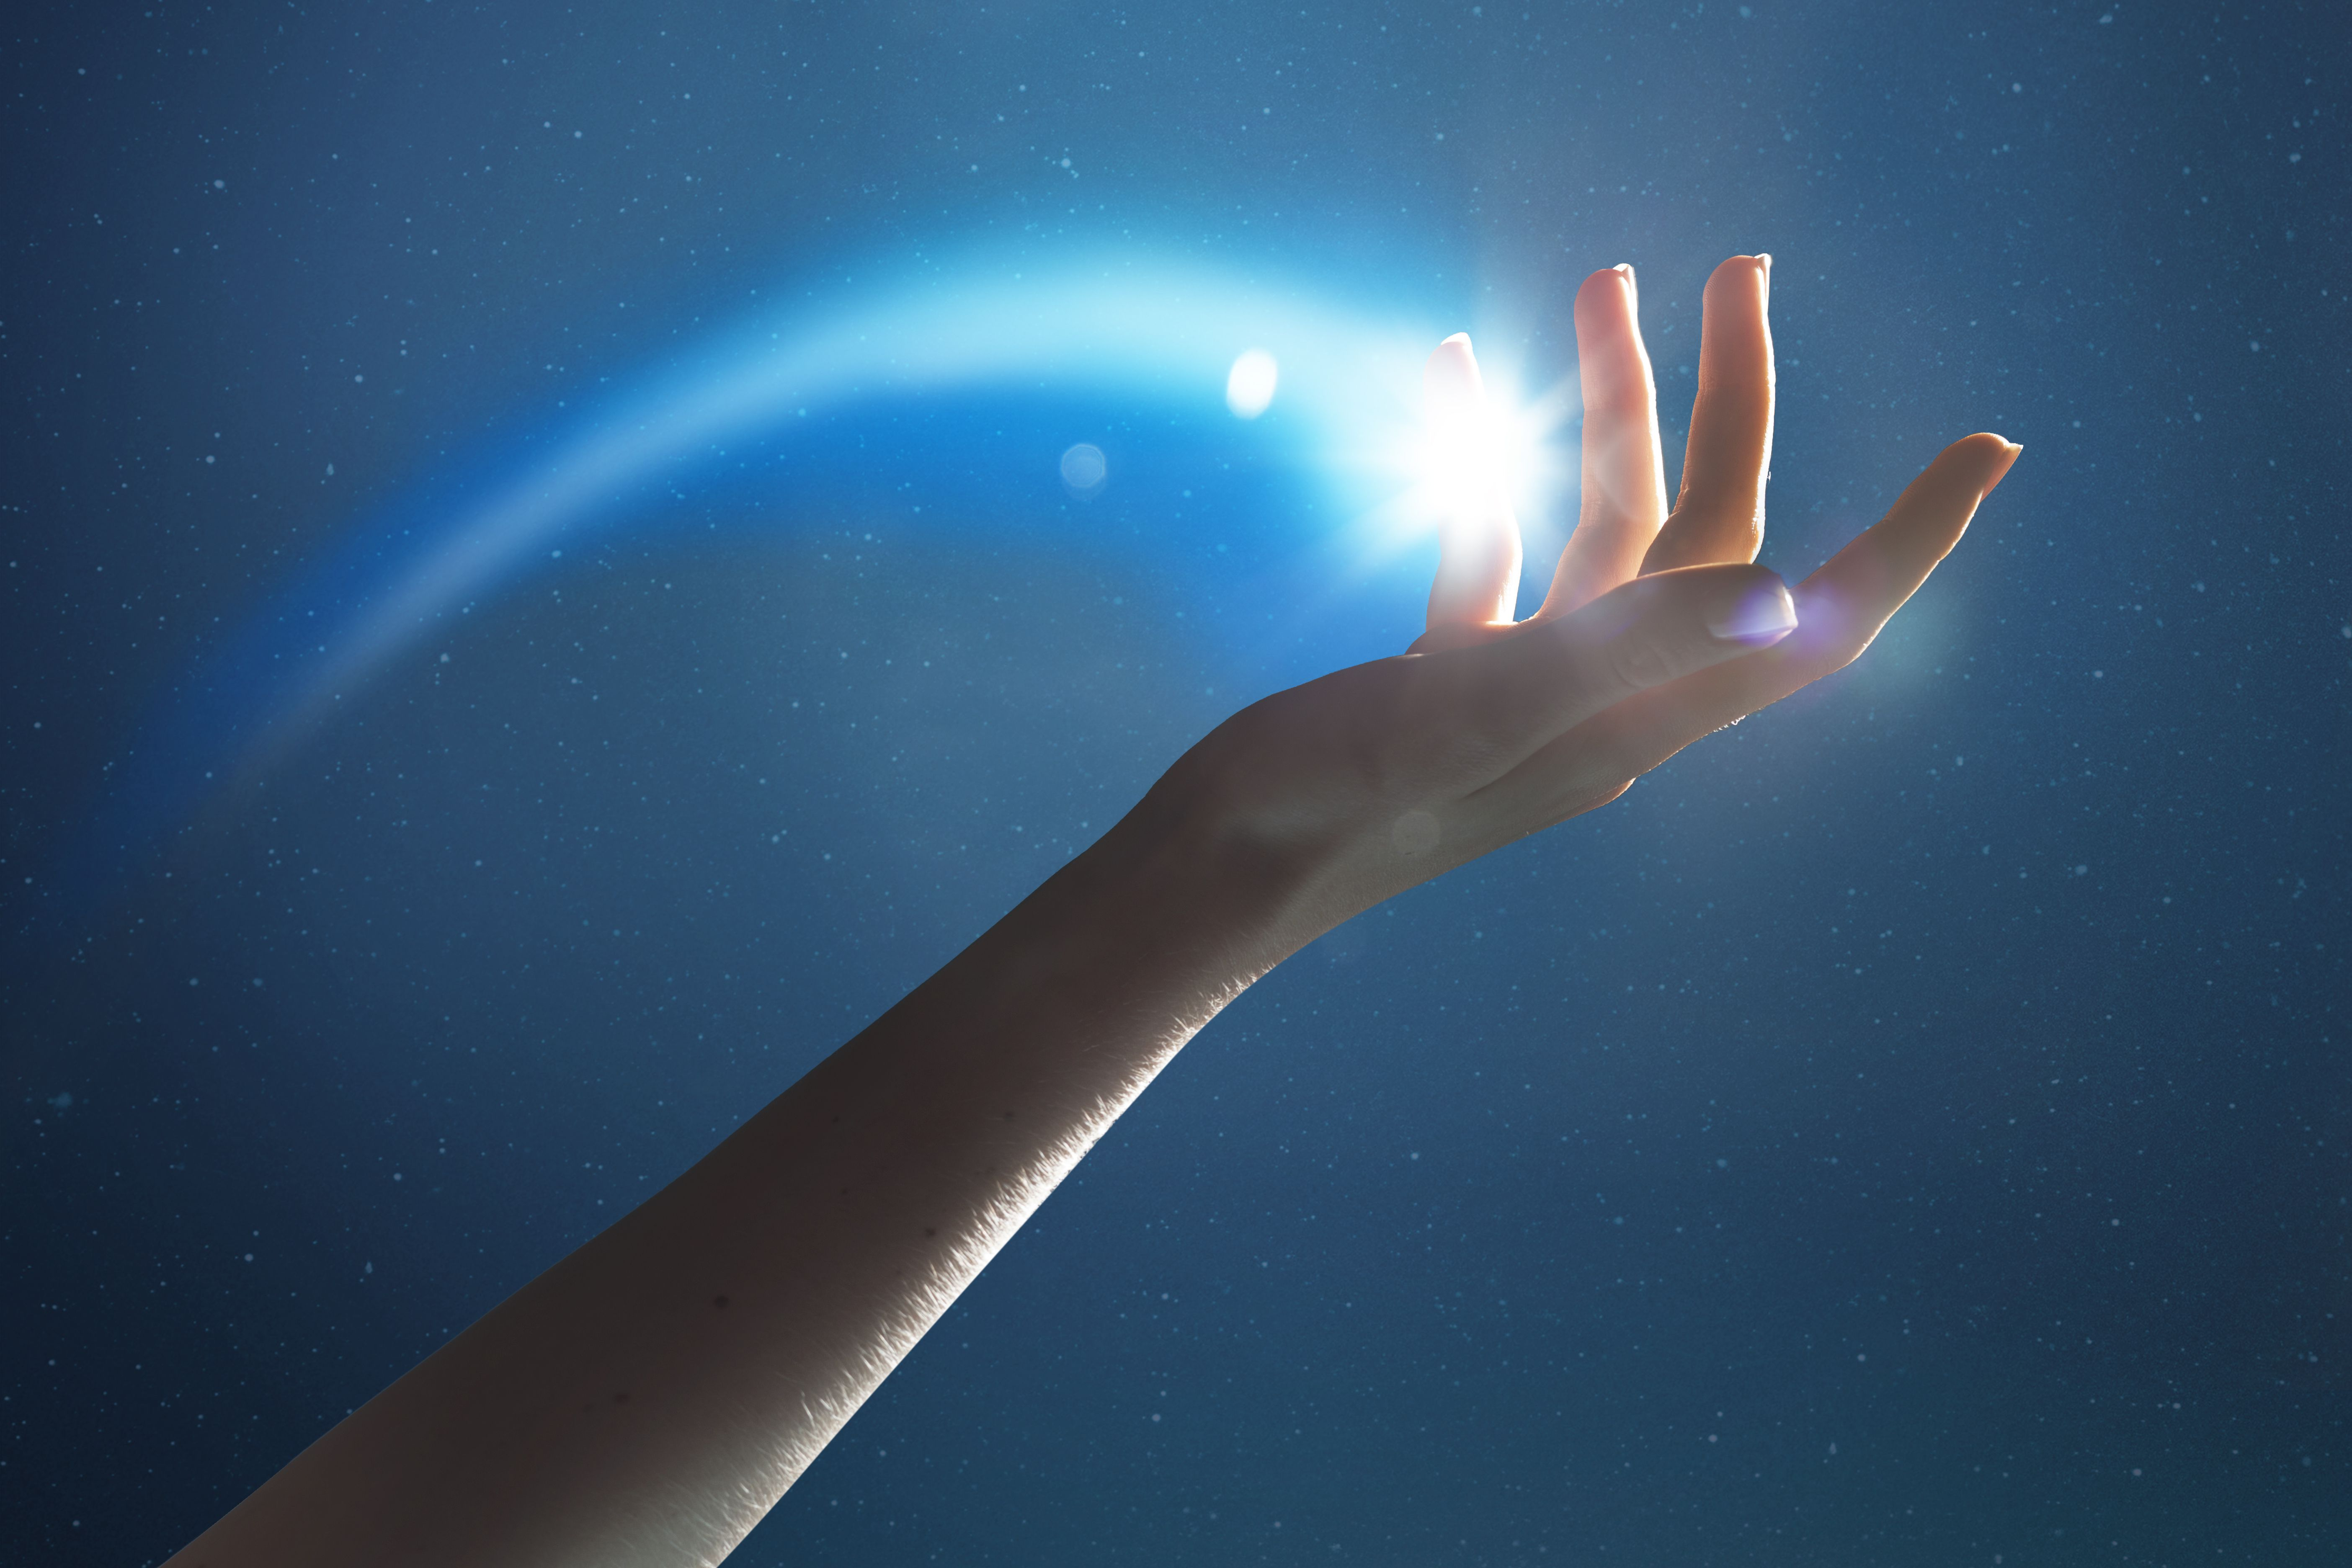 Hand holding a glowing shooting star